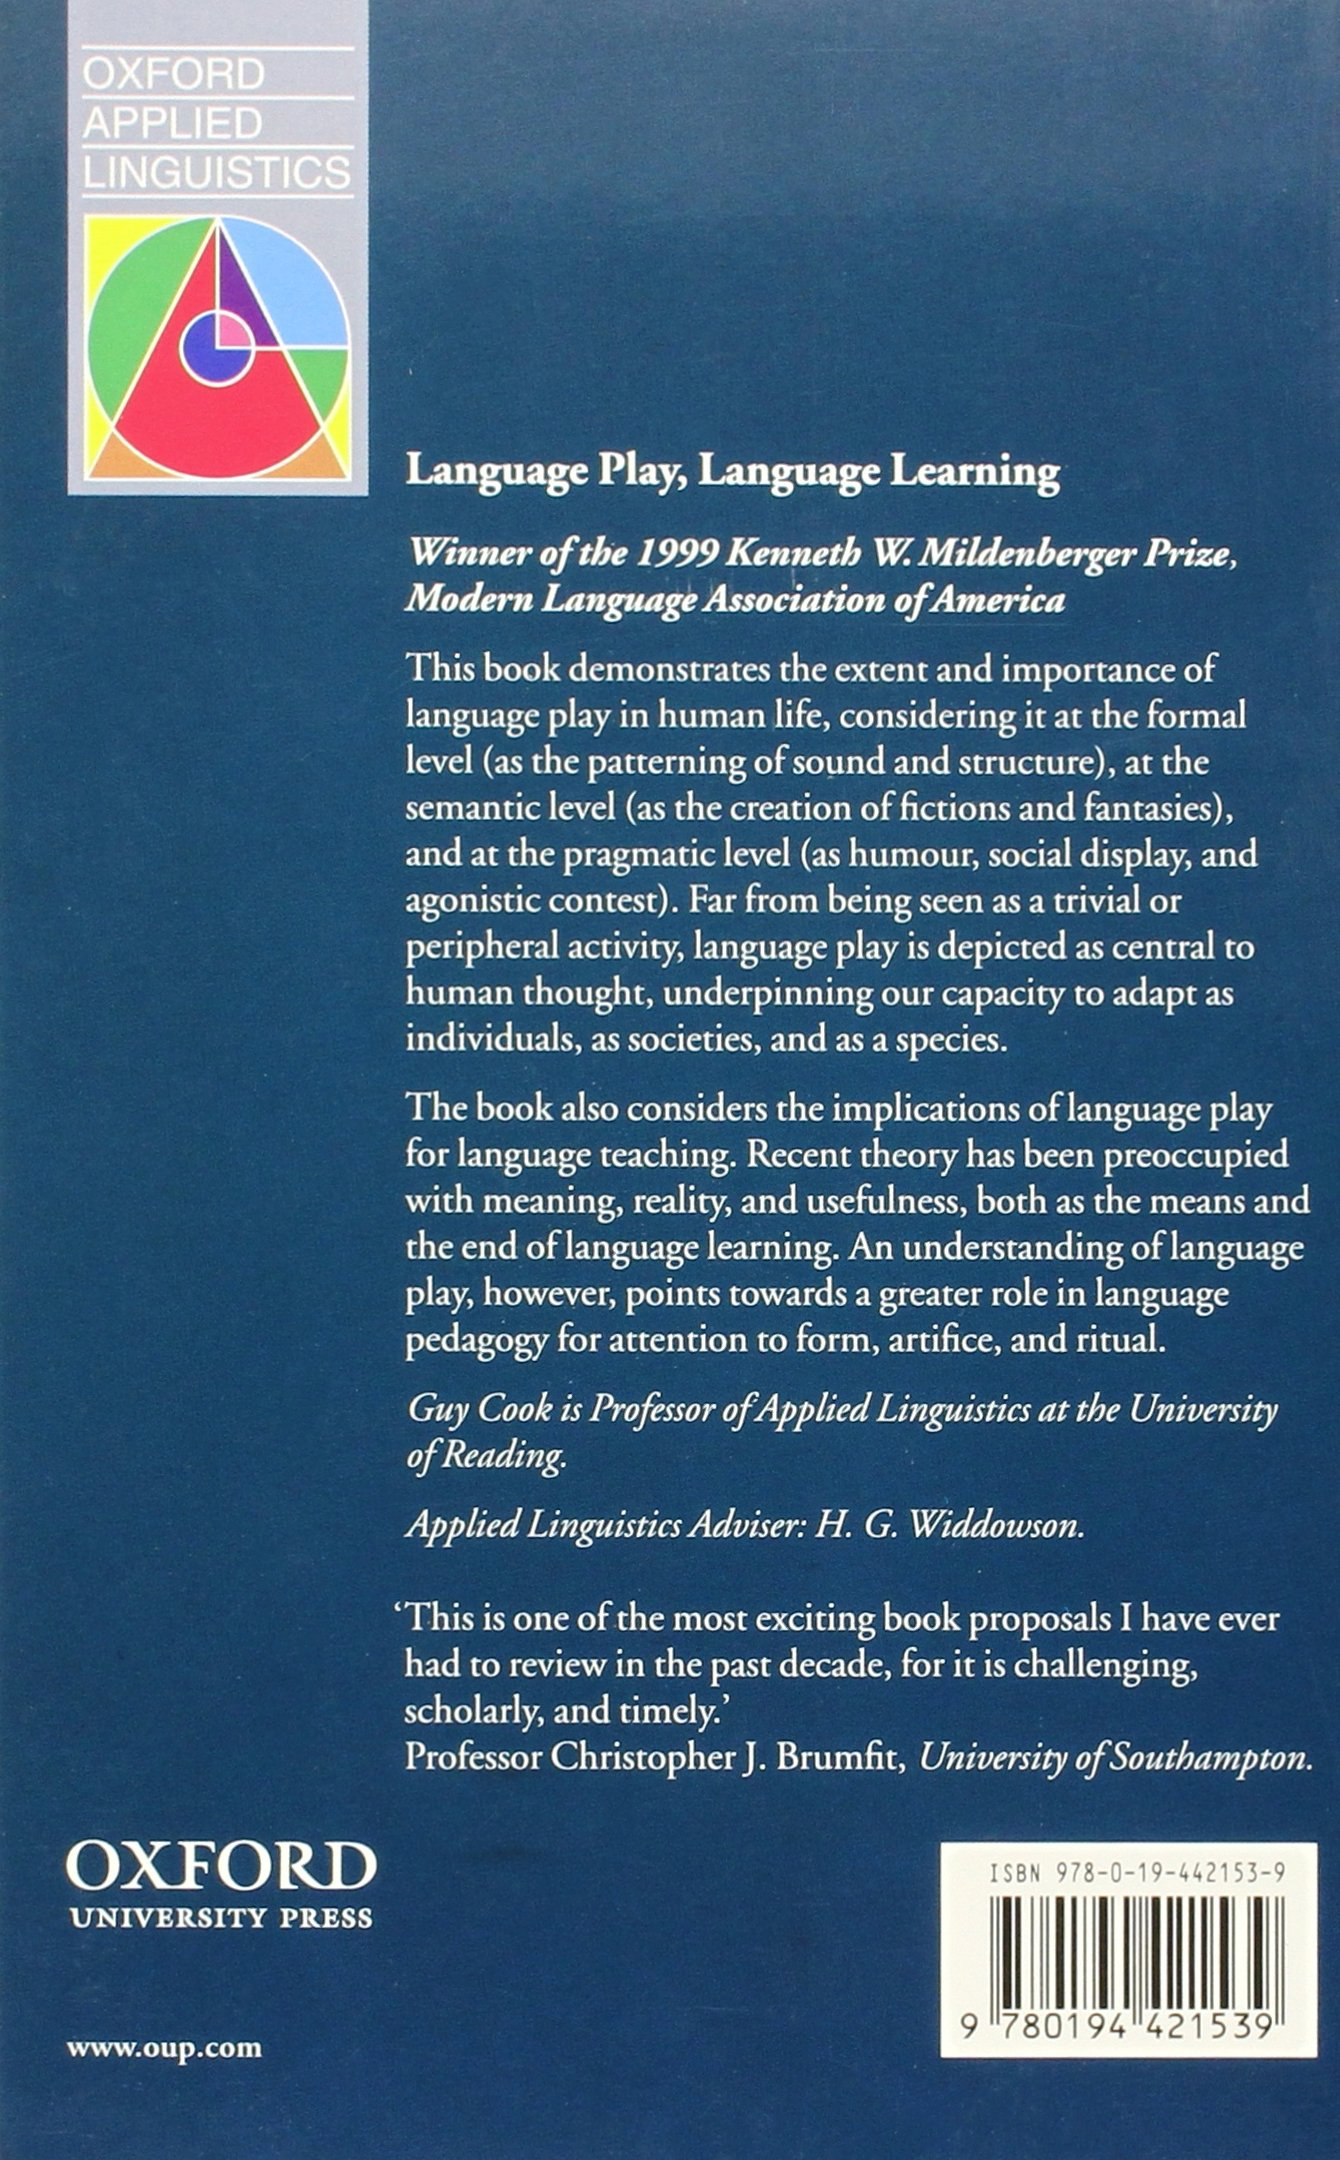 Language Play, Language Learning (Oxford Applied Linguistics) by Oxford University Press